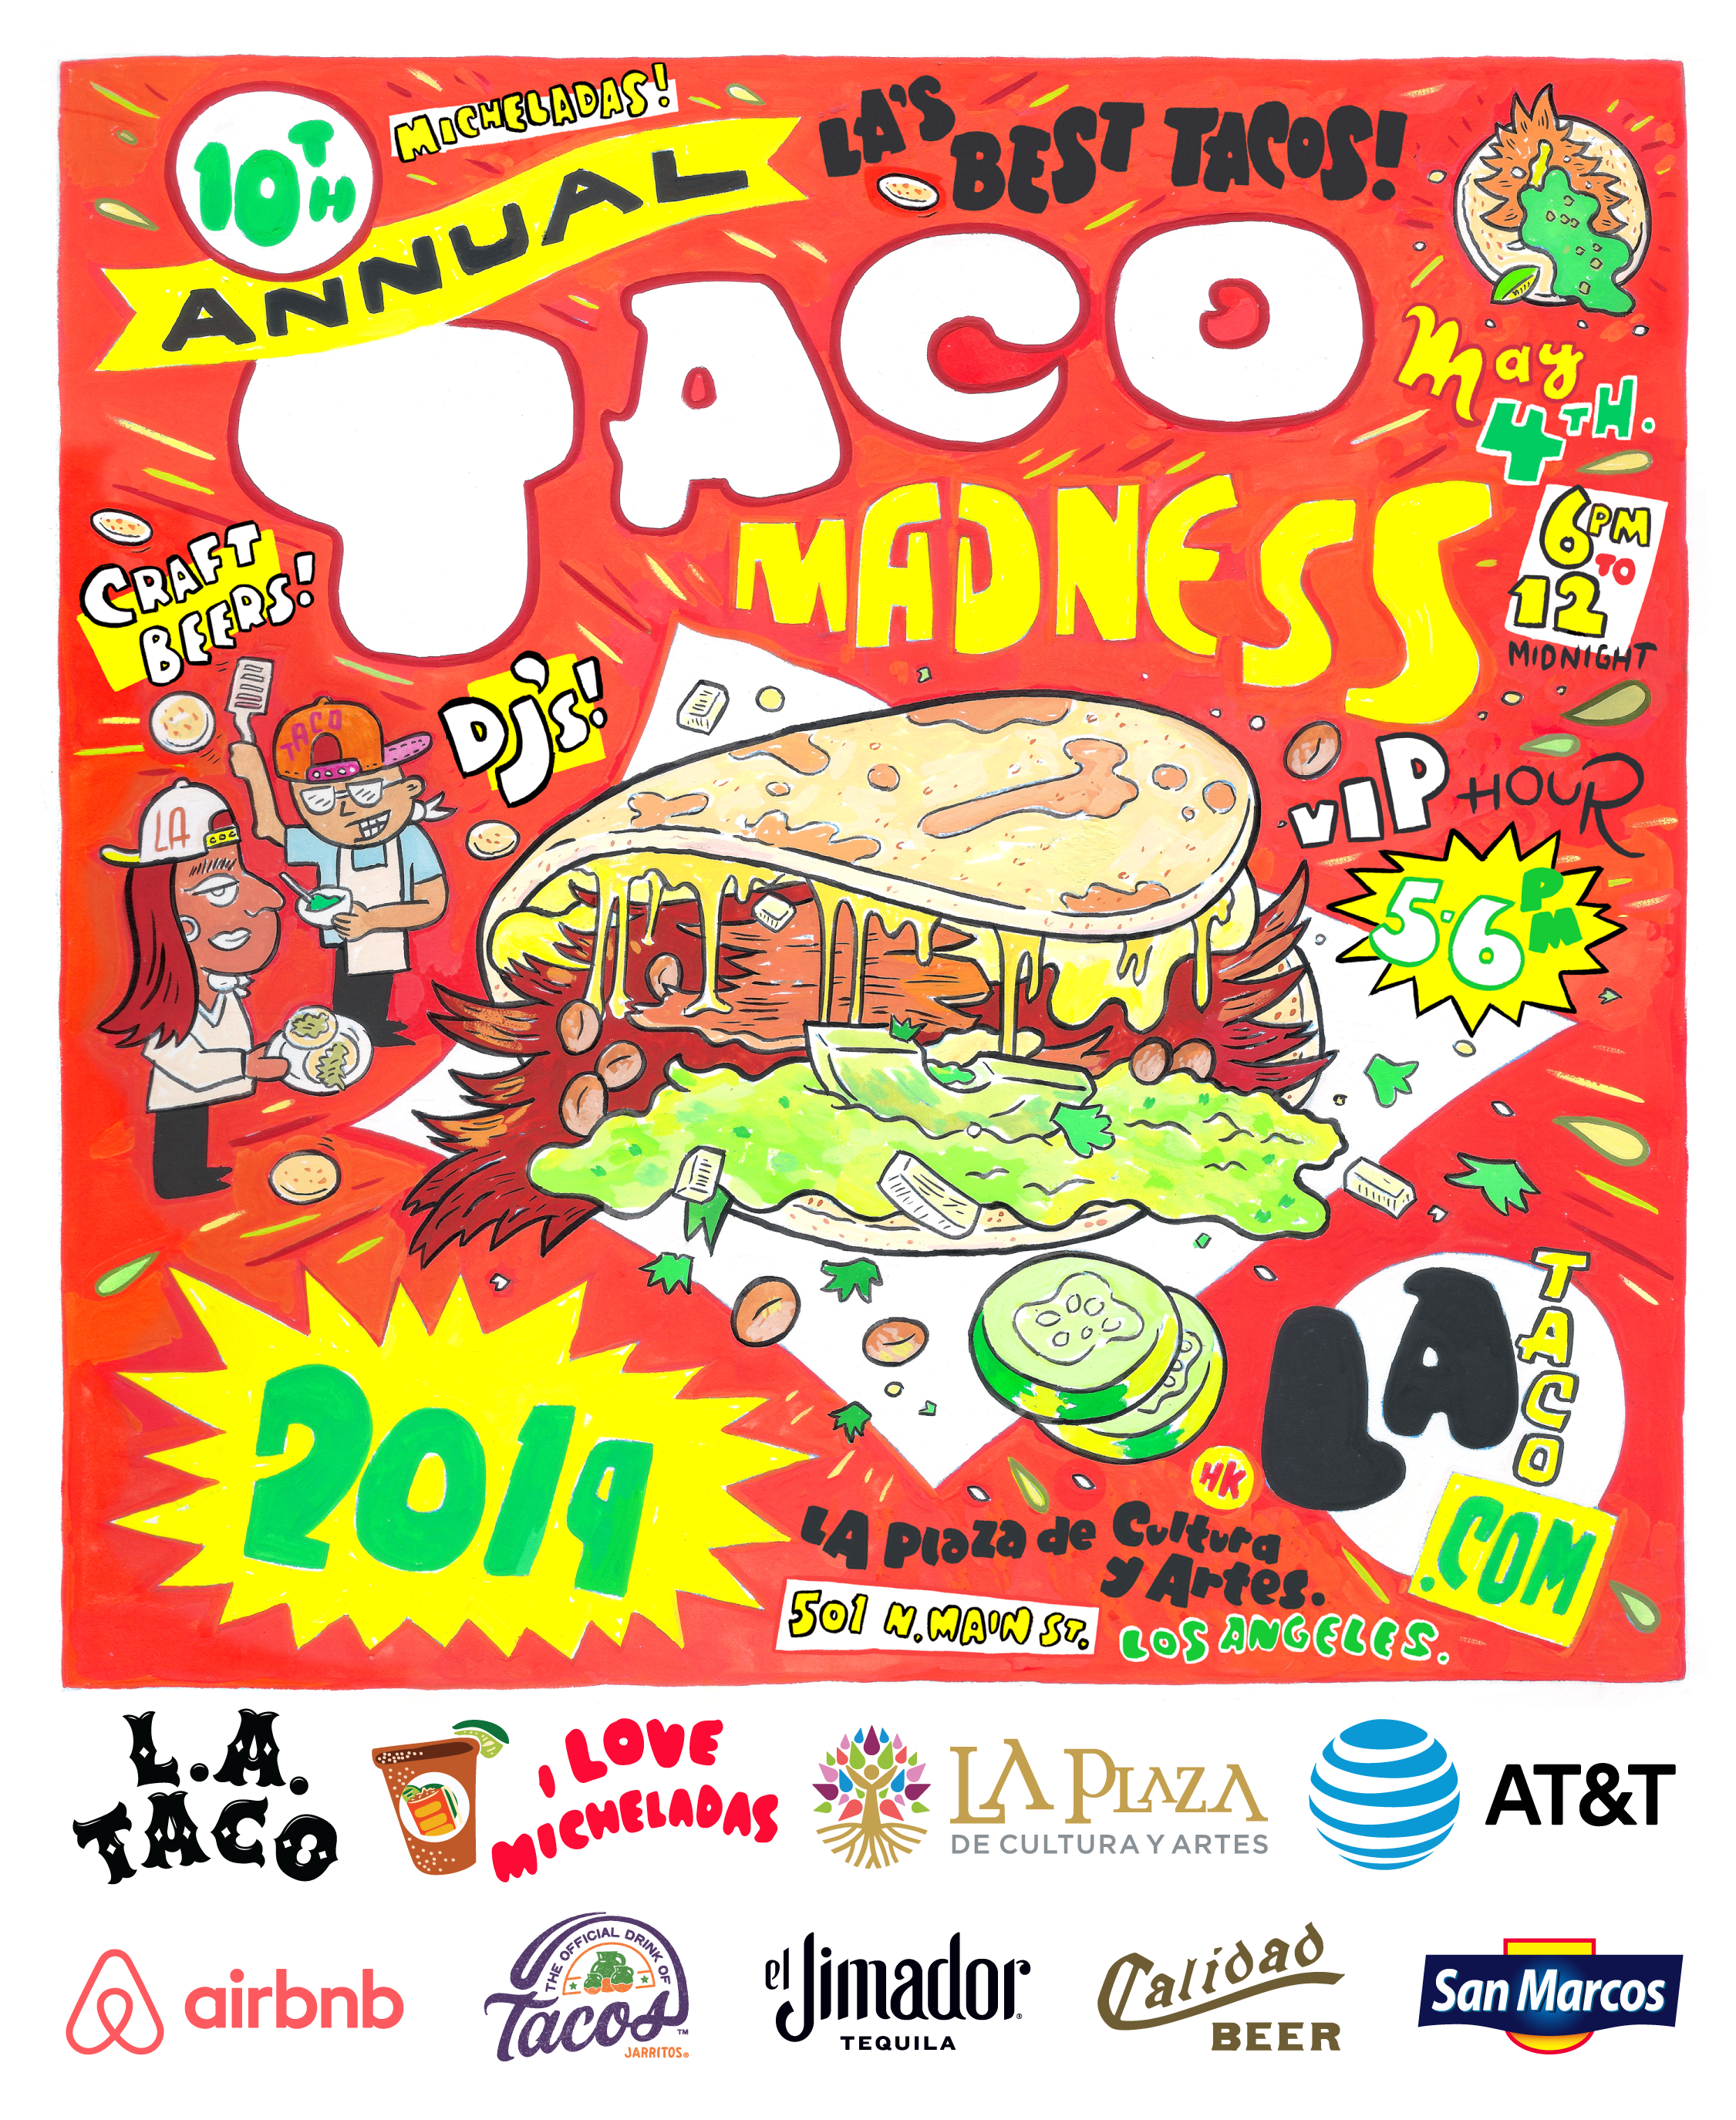 TACO-MADNESS-2019 Sponsors v2.png